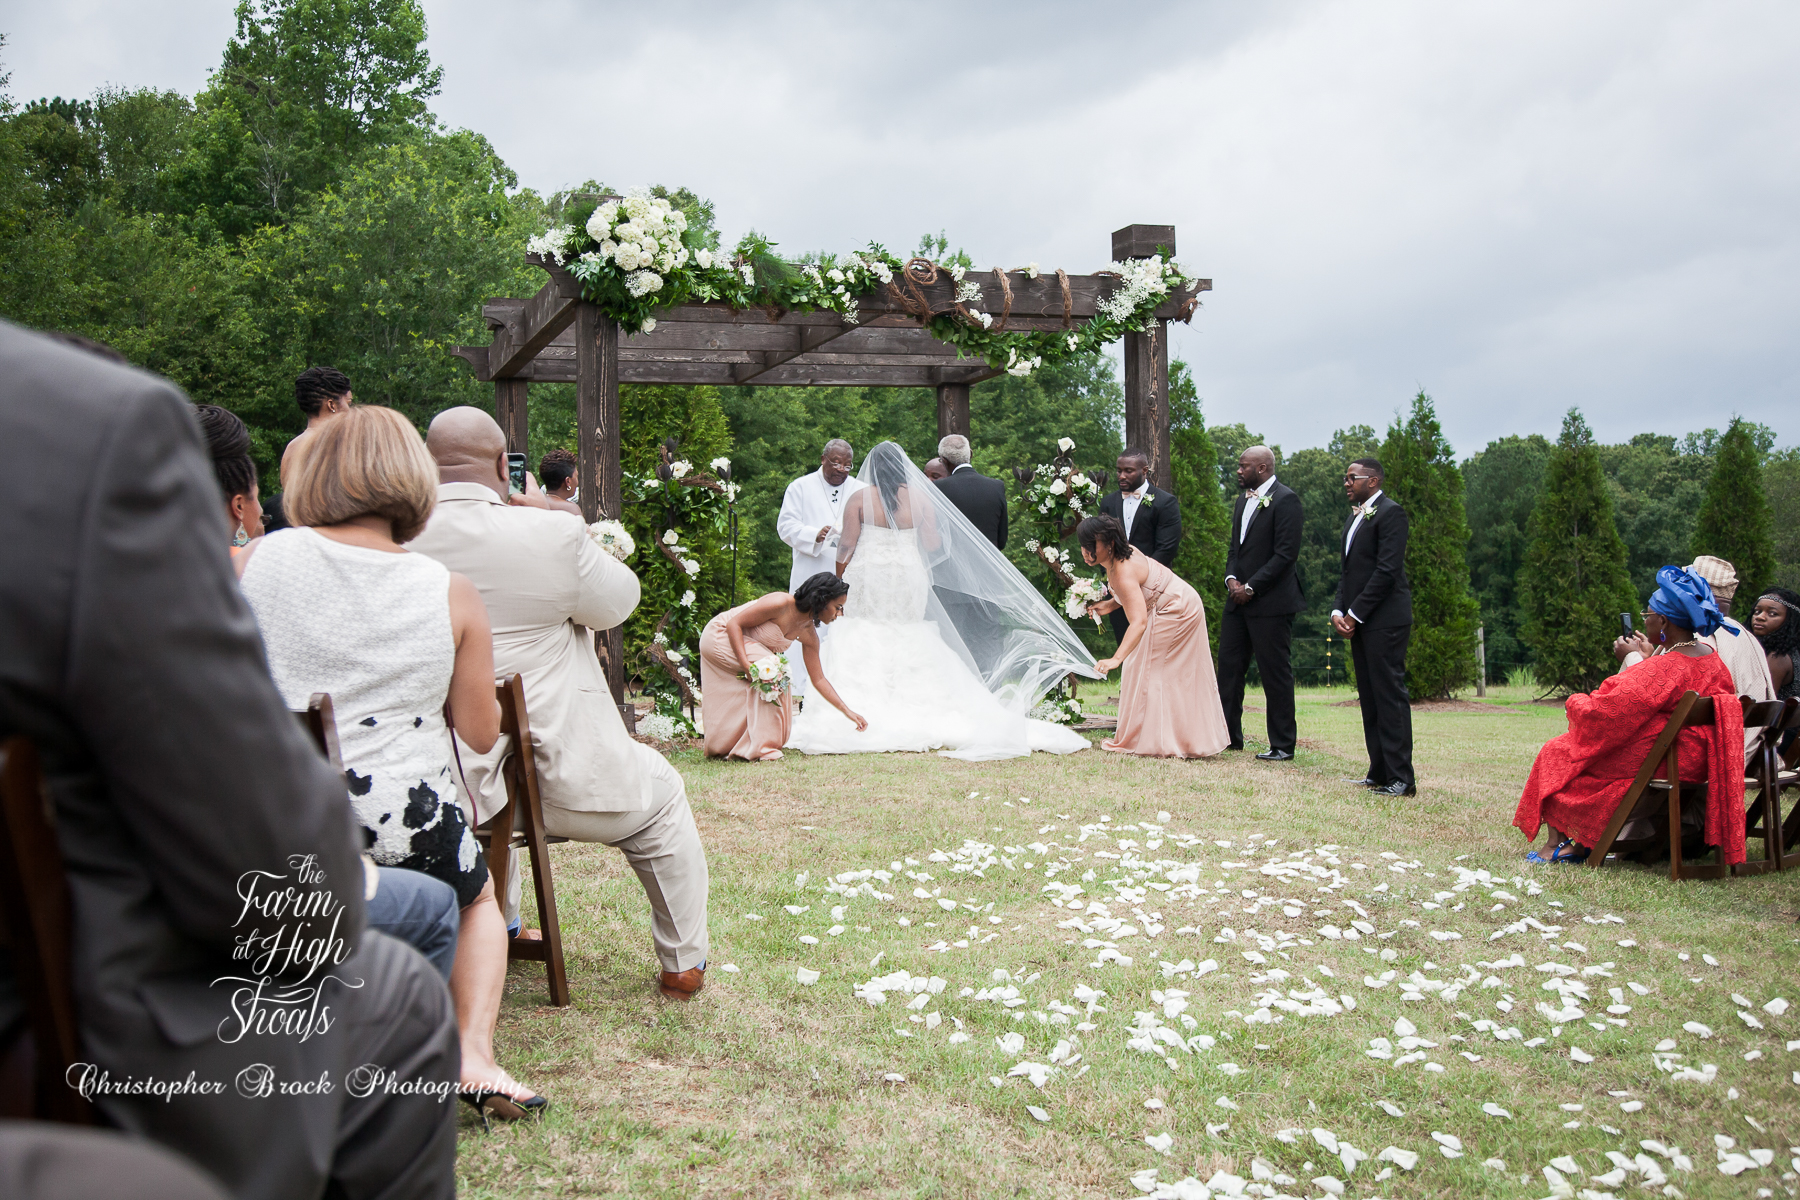 The Farm at High Shoals -- Atlanta Vineyard Wedding Venue (159 of 676)